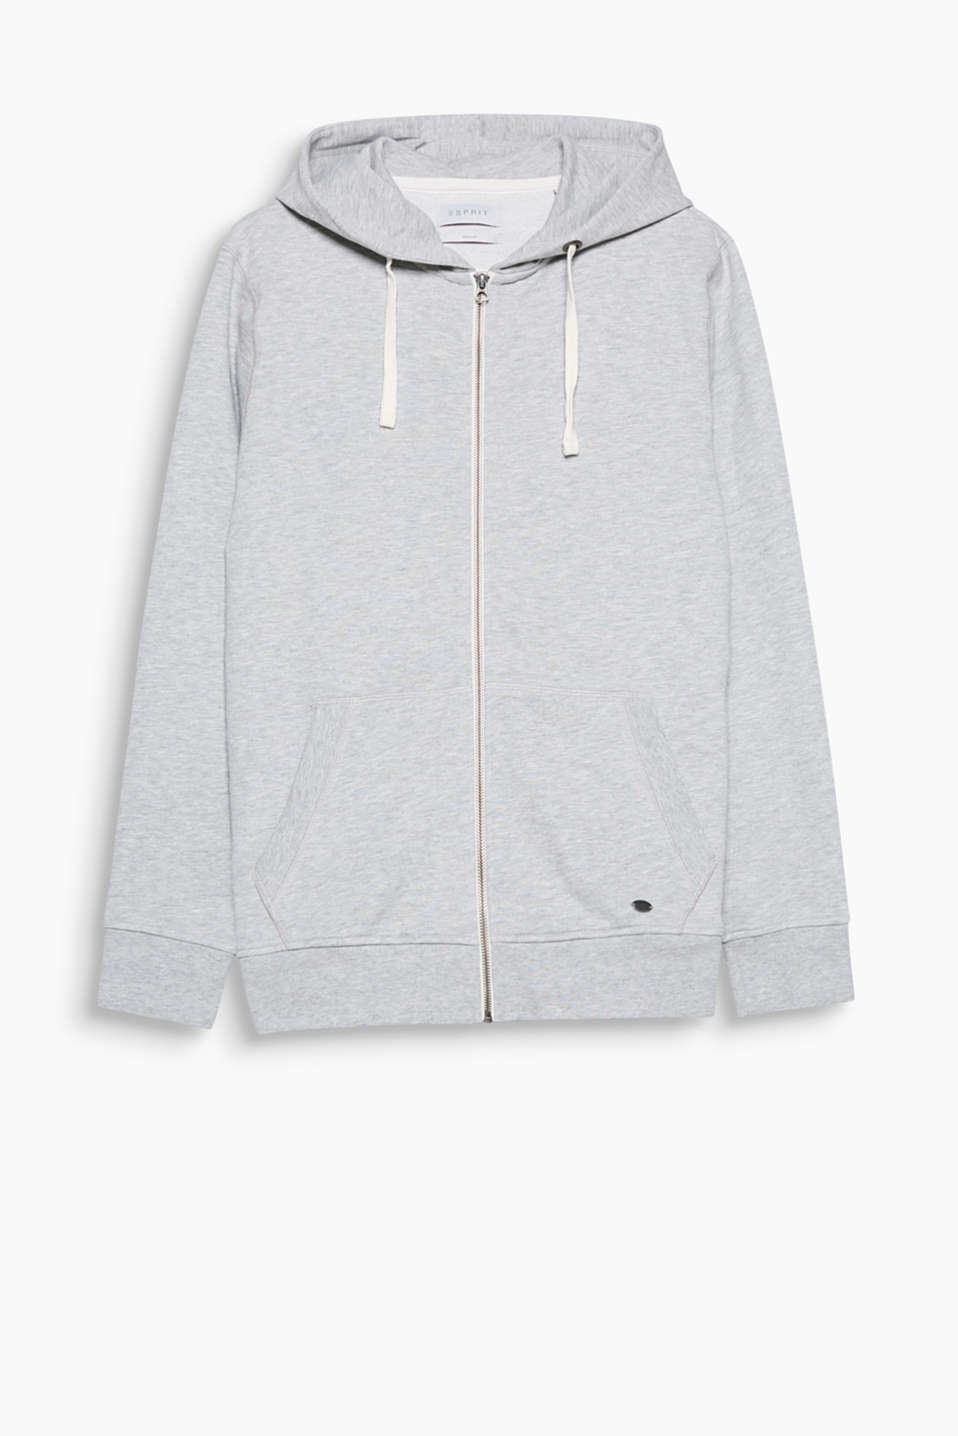 Classic hoodie with a stylish, retro vibe! The contrasting zip makes this hoodie look really cool.